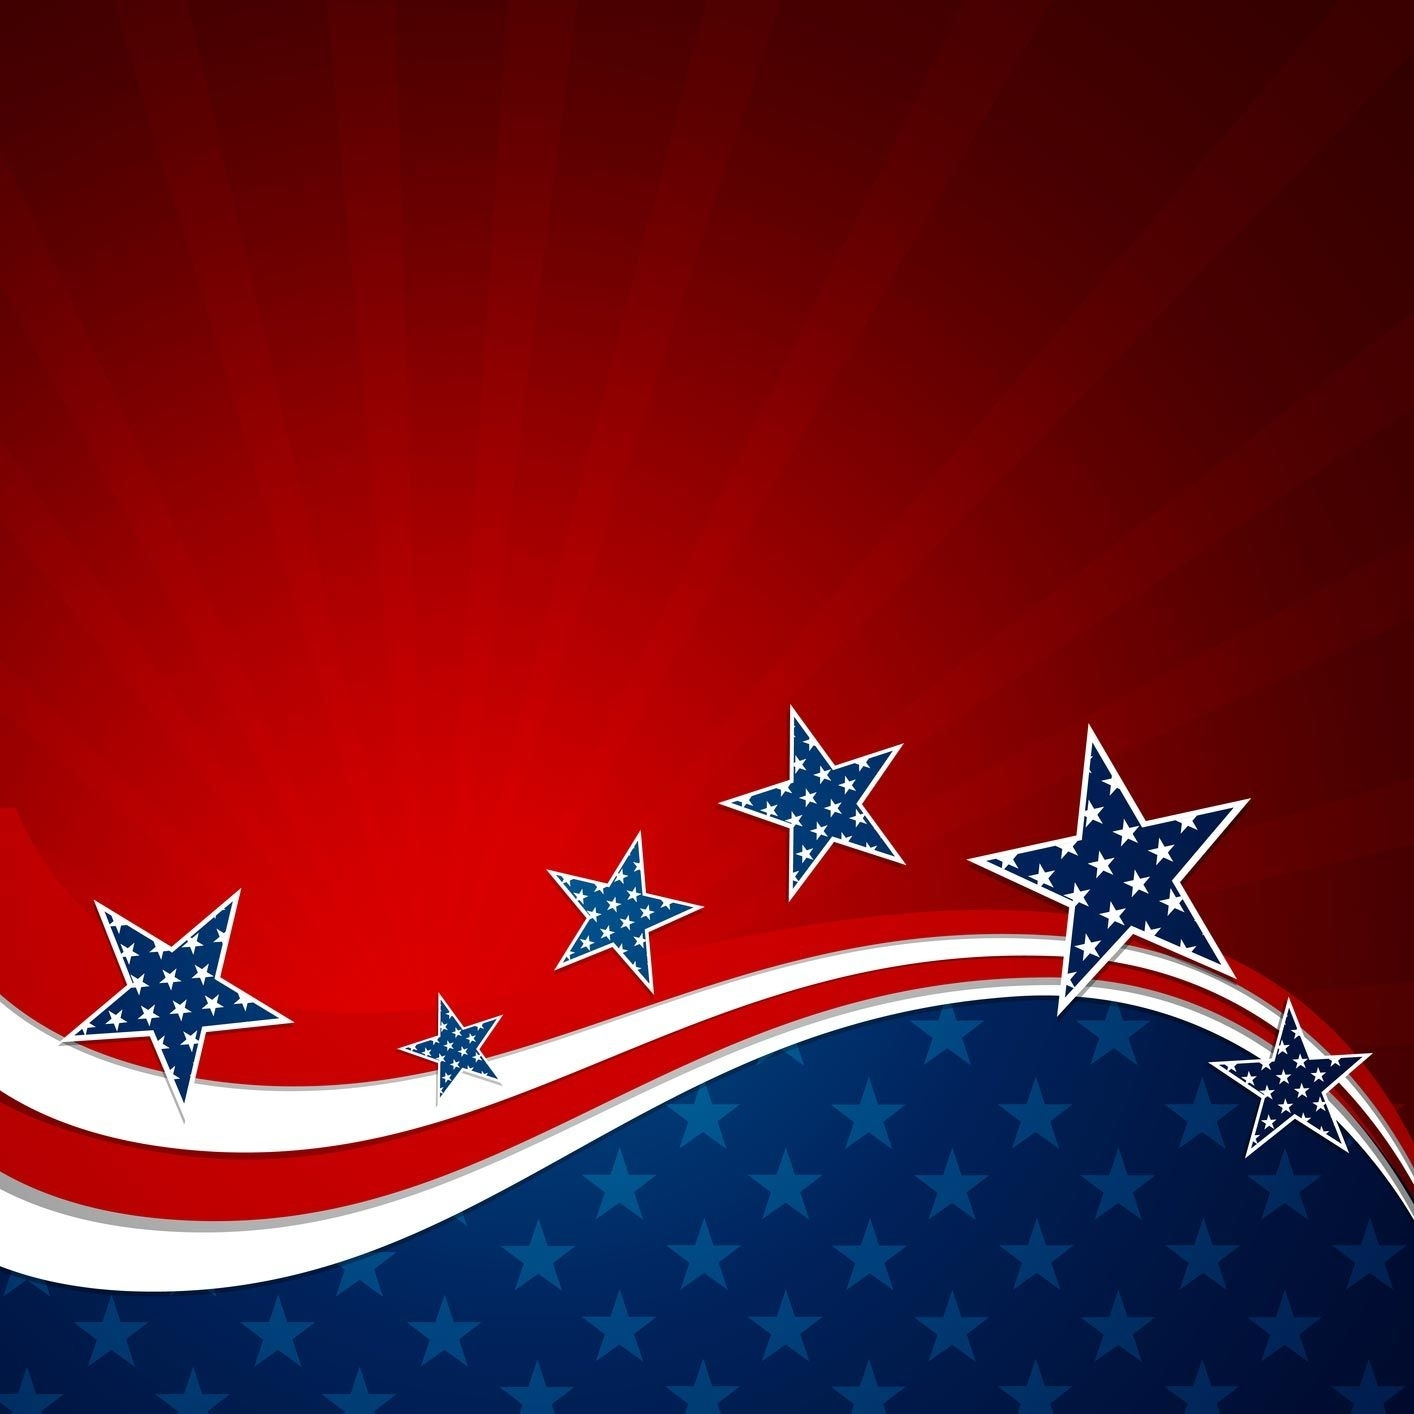 10 Best Fourth Of July Background Images FULL HD 1080p For PC Background